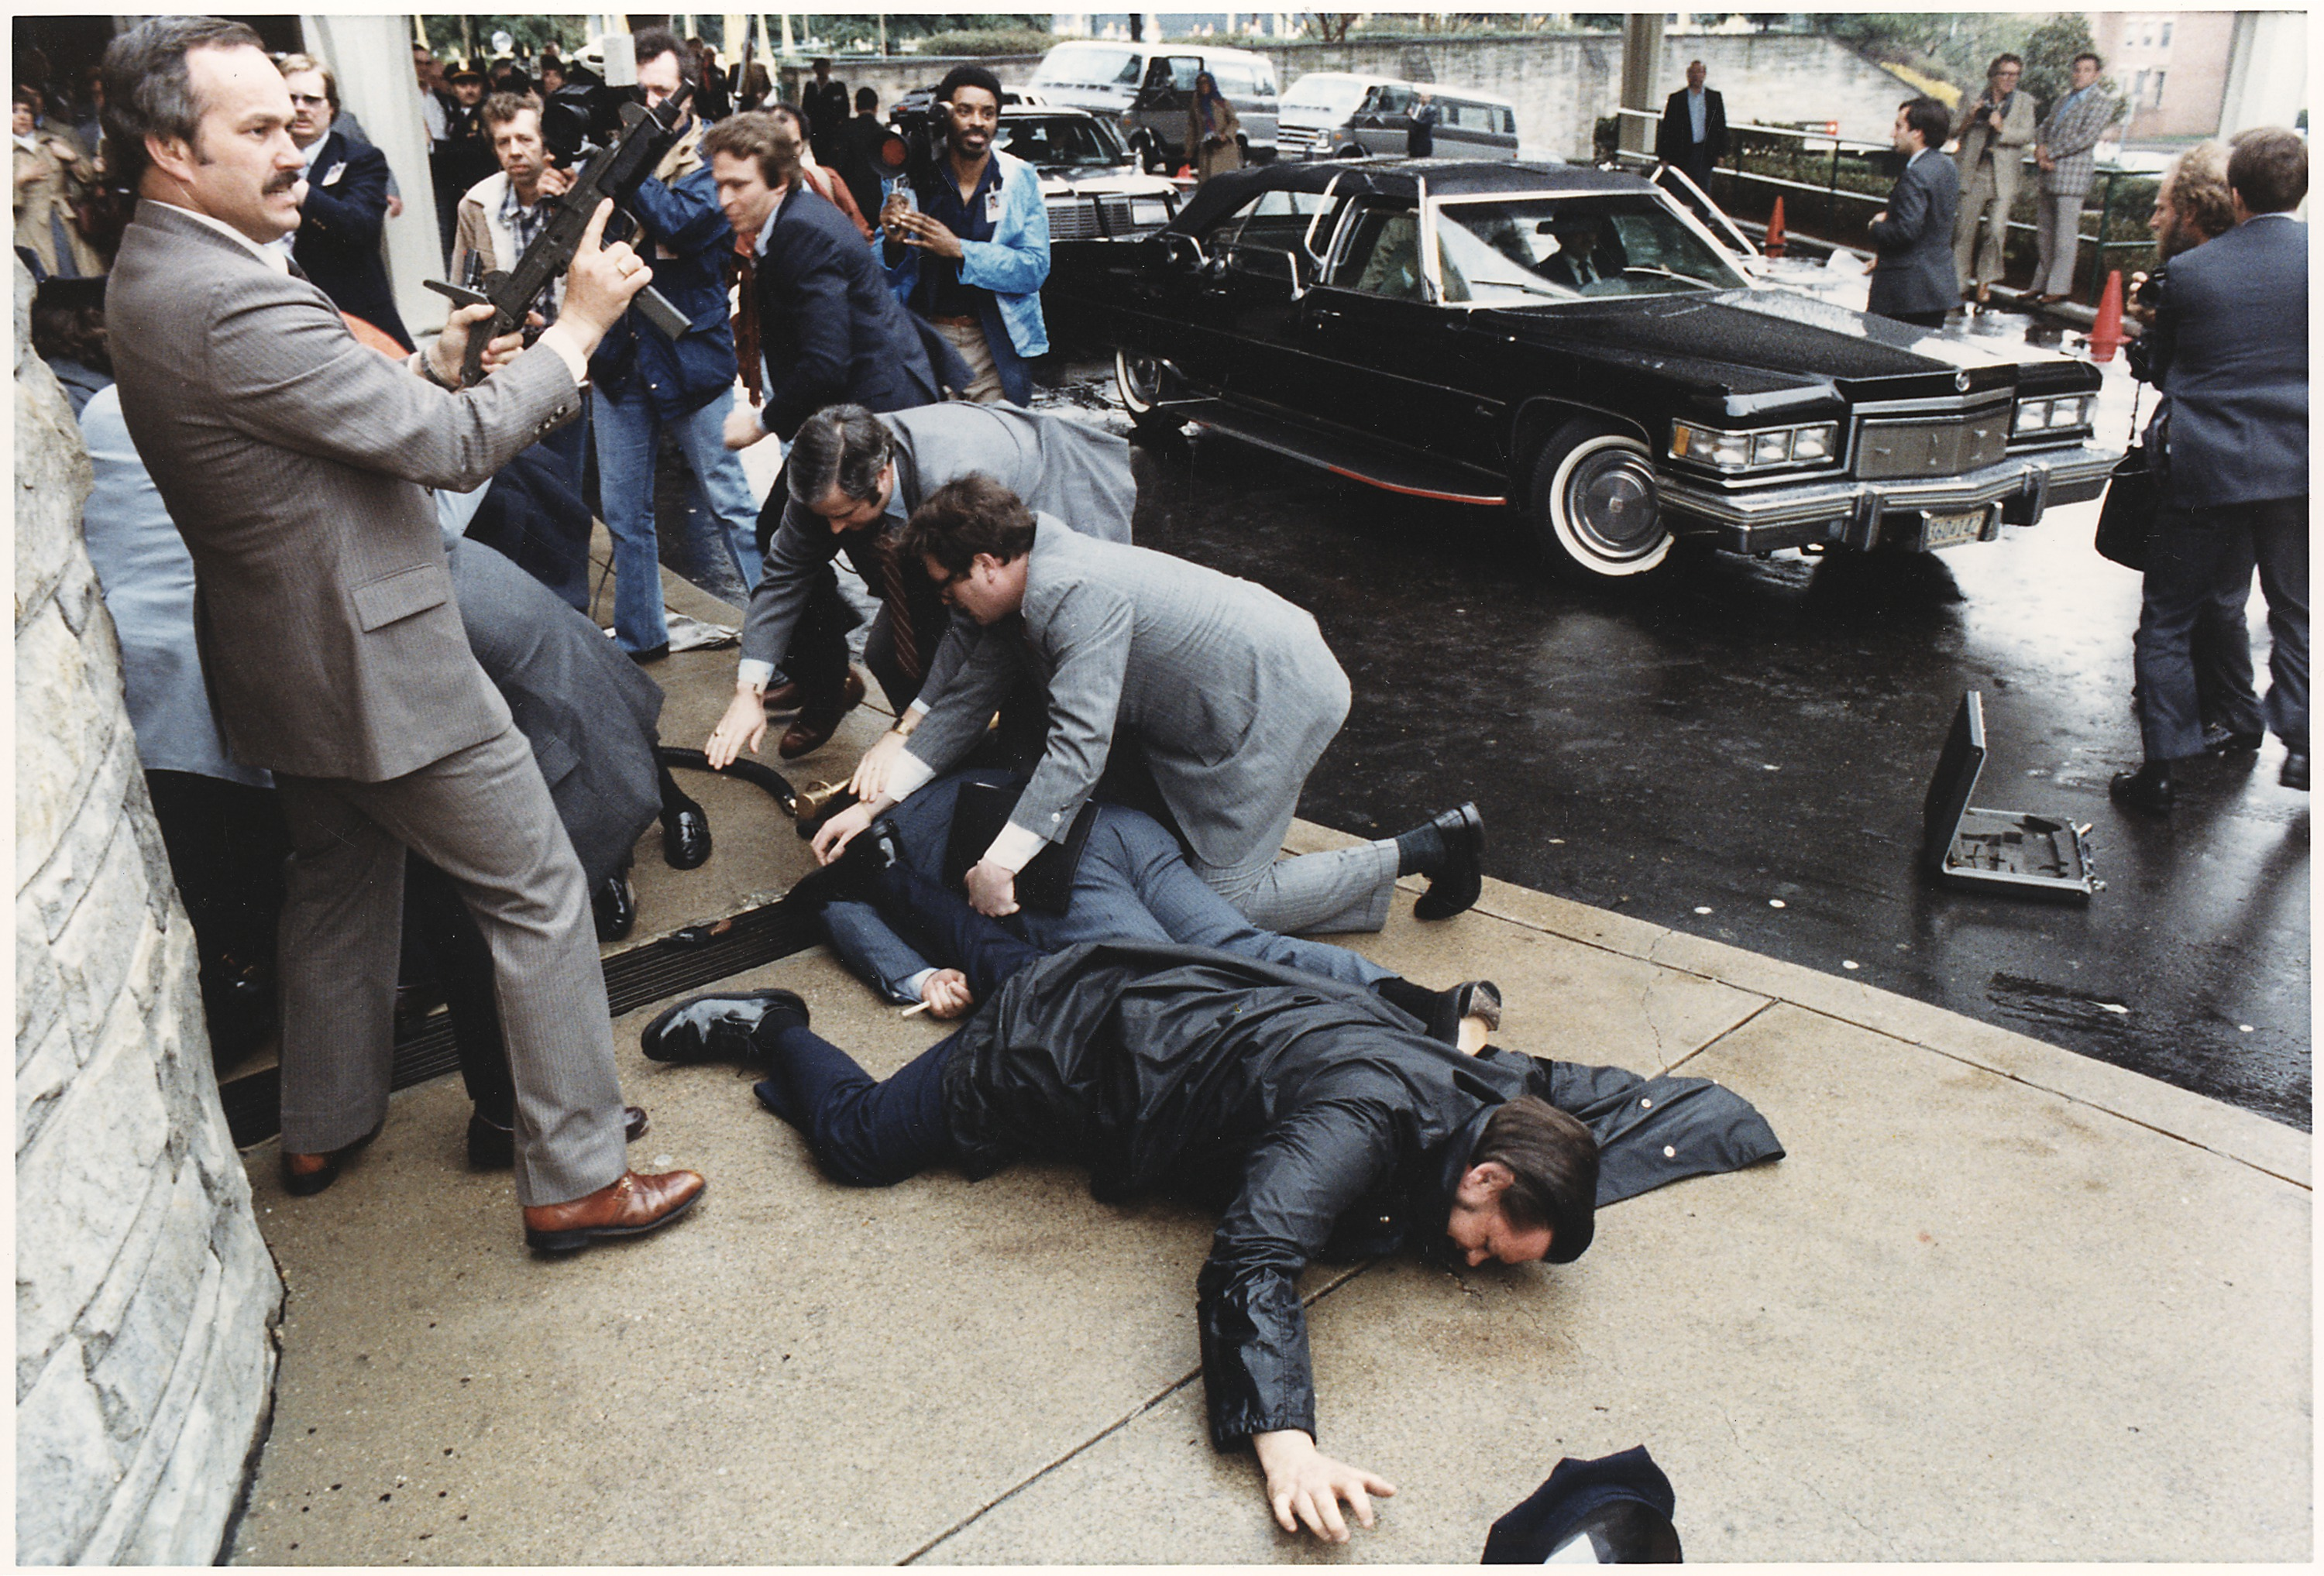 https://upload.wikimedia.org/wikipedia/commons/2/2b/Photograph_of_chaos_outside_the_Washington_Hilton_Hotel_after_the_assassination_attempt_on_President_Reagan_-_NARA_-_198514.jpg